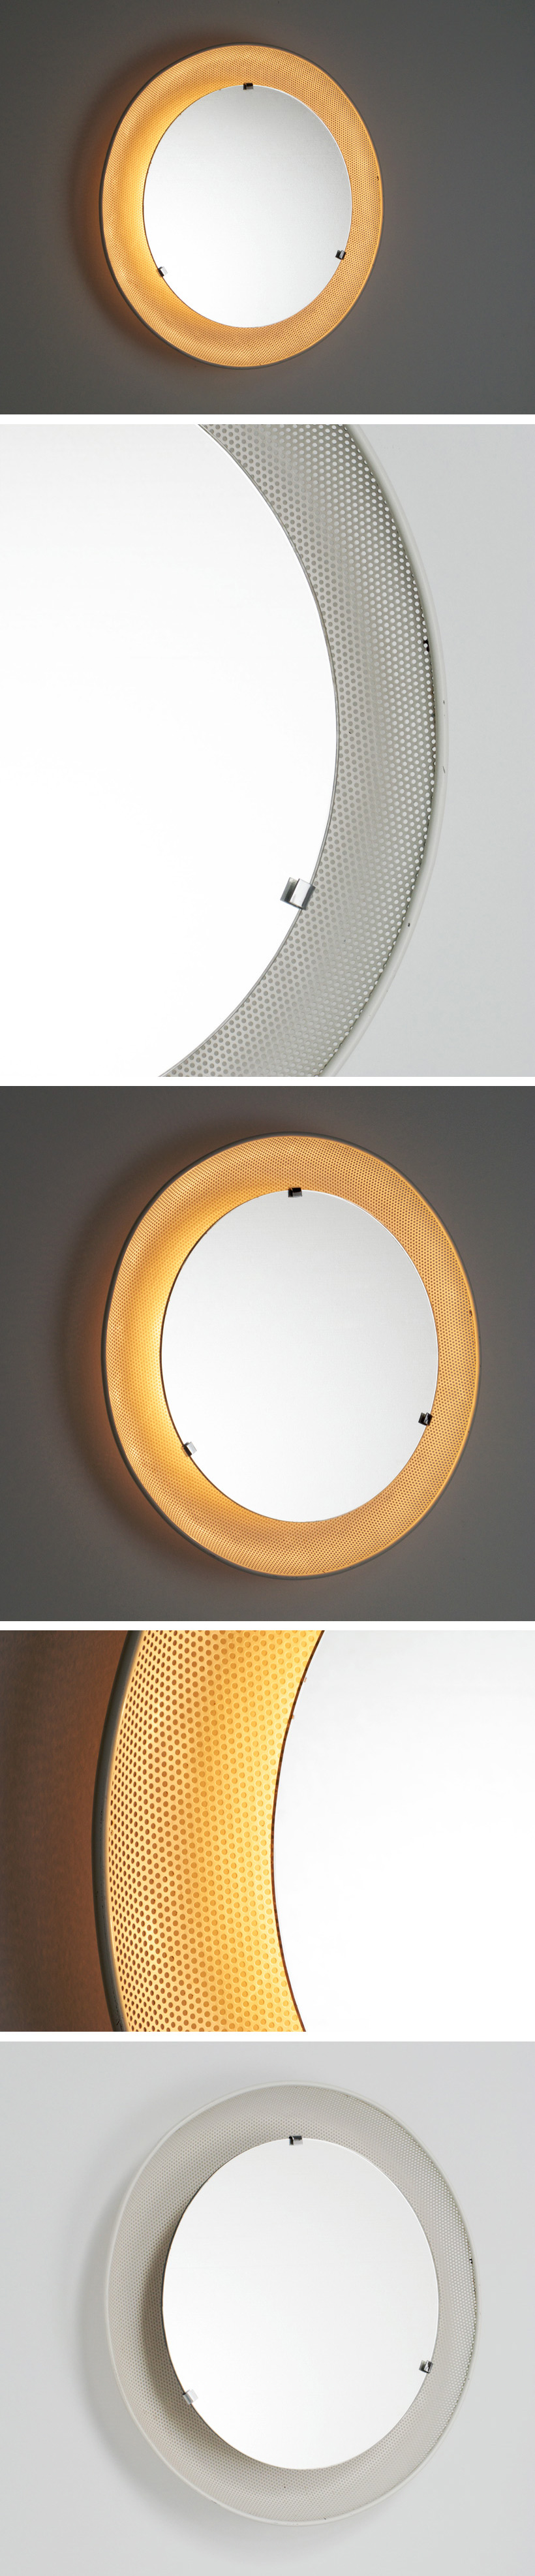 Round metal perforated mirror with backlight 1950 Large